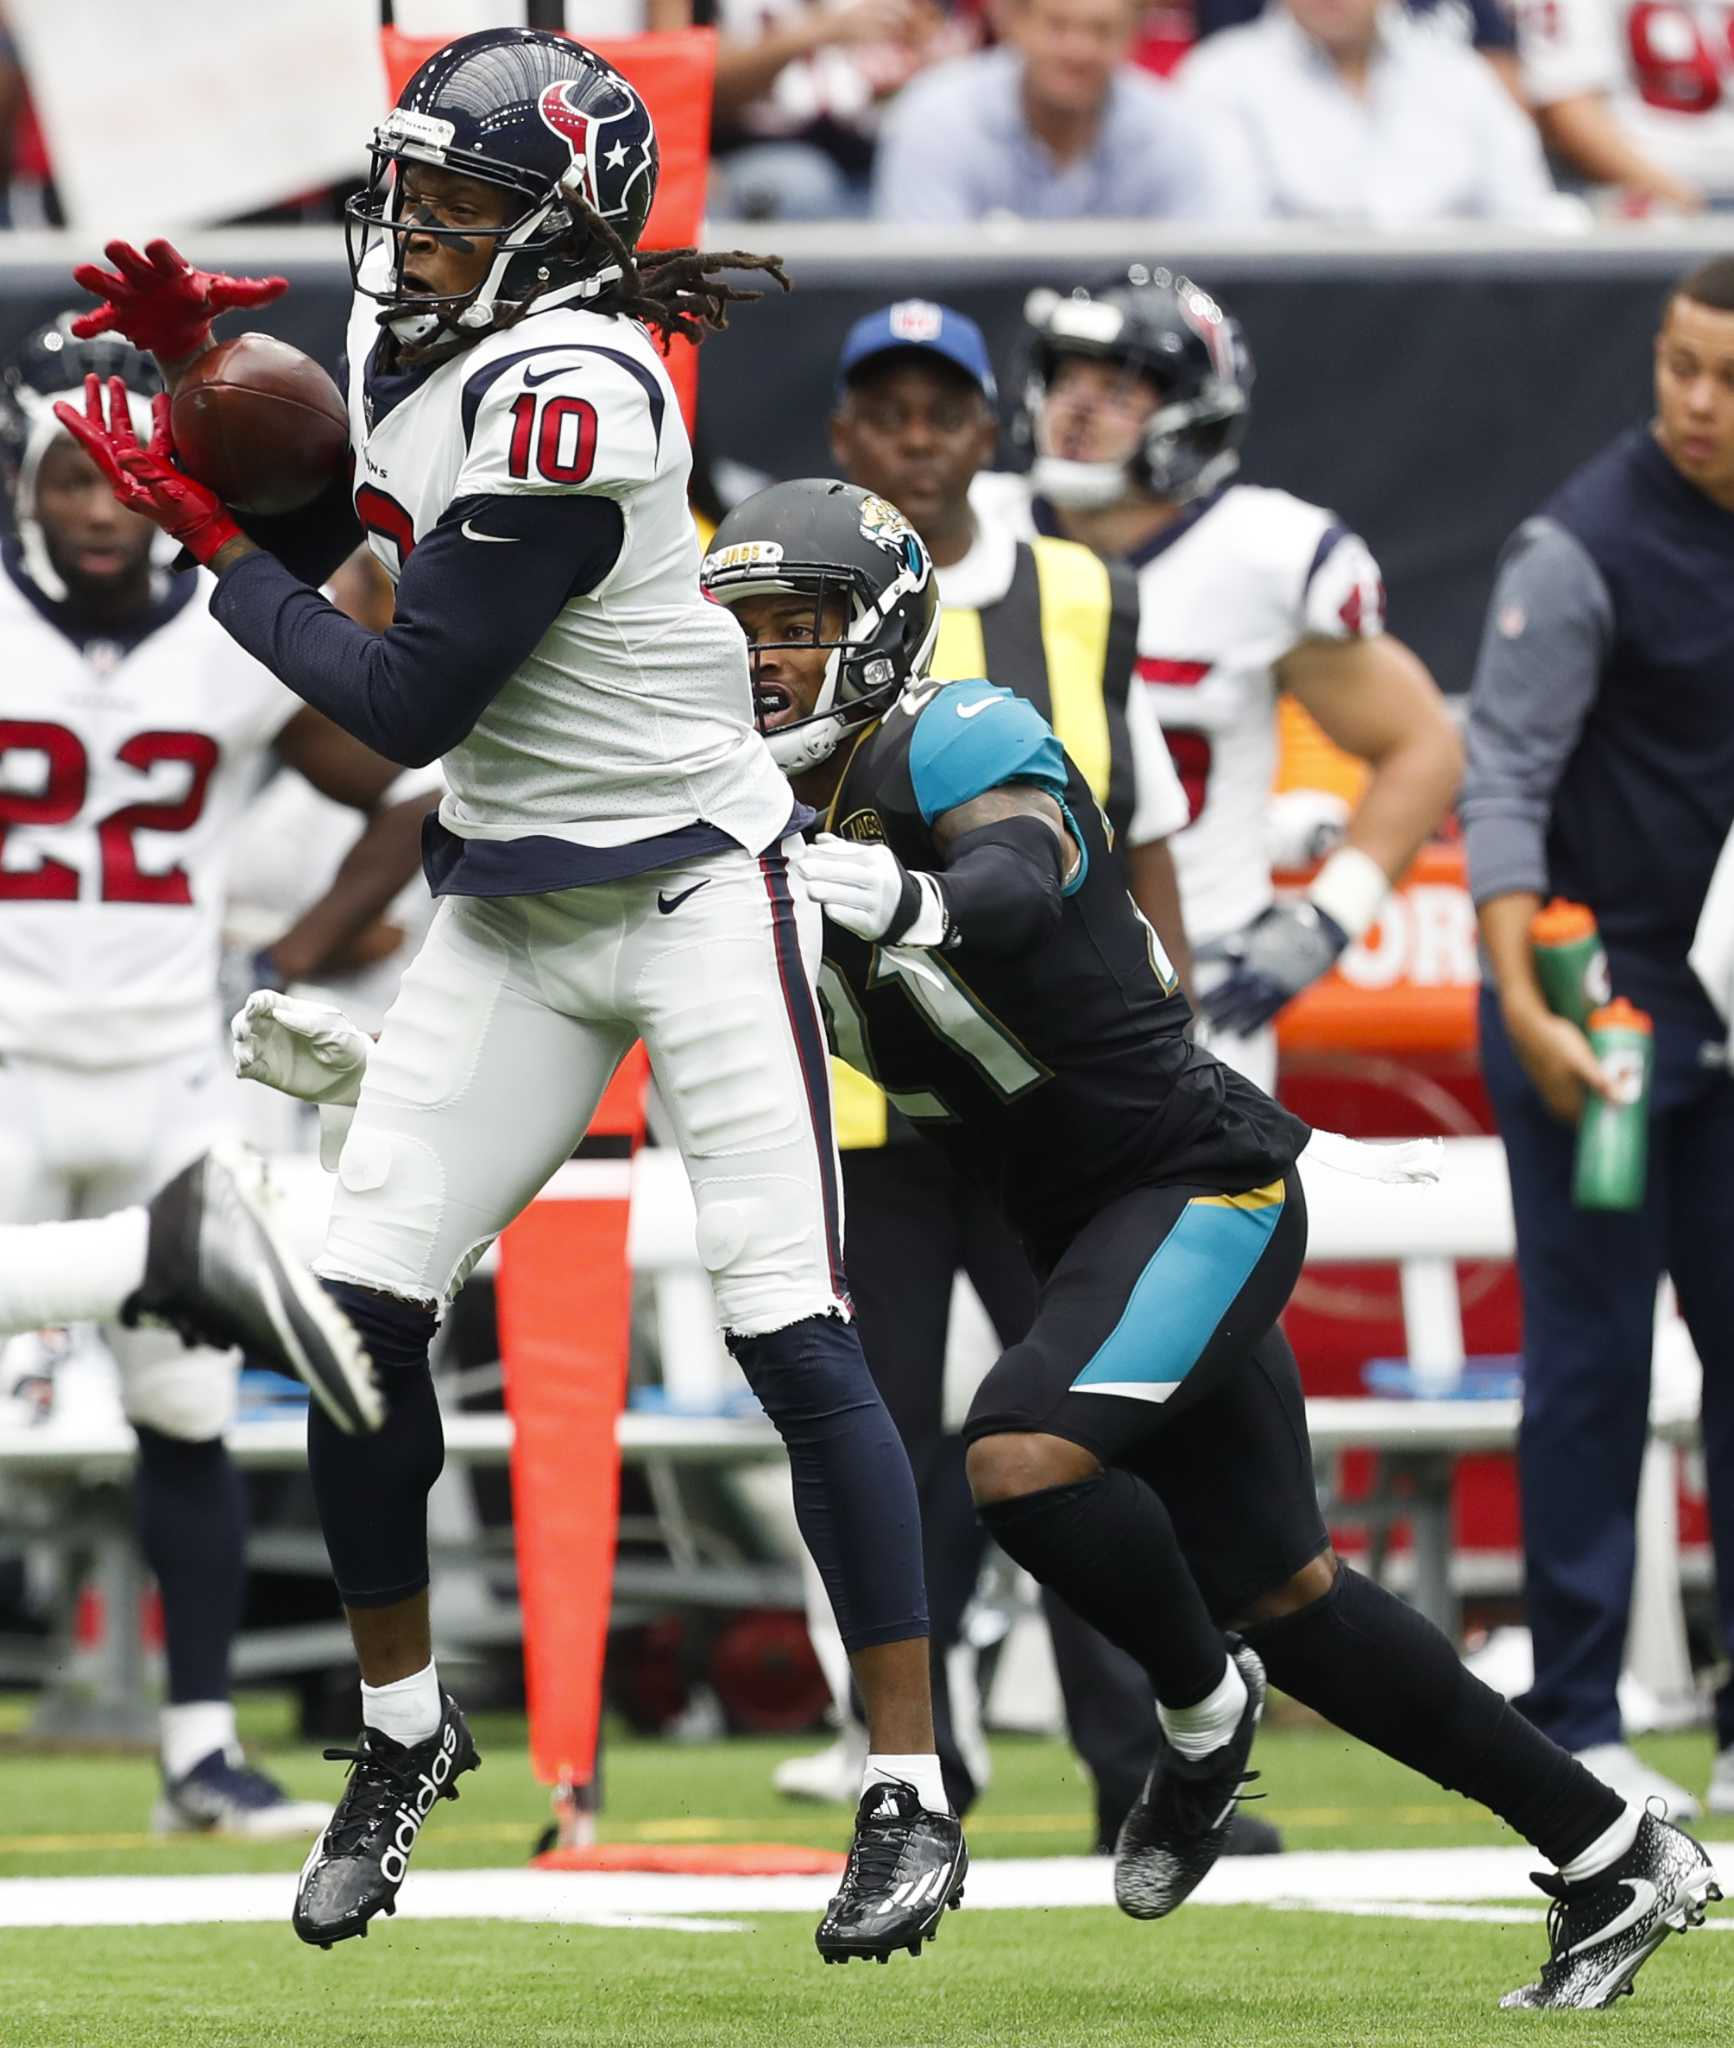 Ex-teammates DeAndre Hopkins and A.J. Bouye thrive in rivalry -  HoustonChronicle.com d0d2689ce